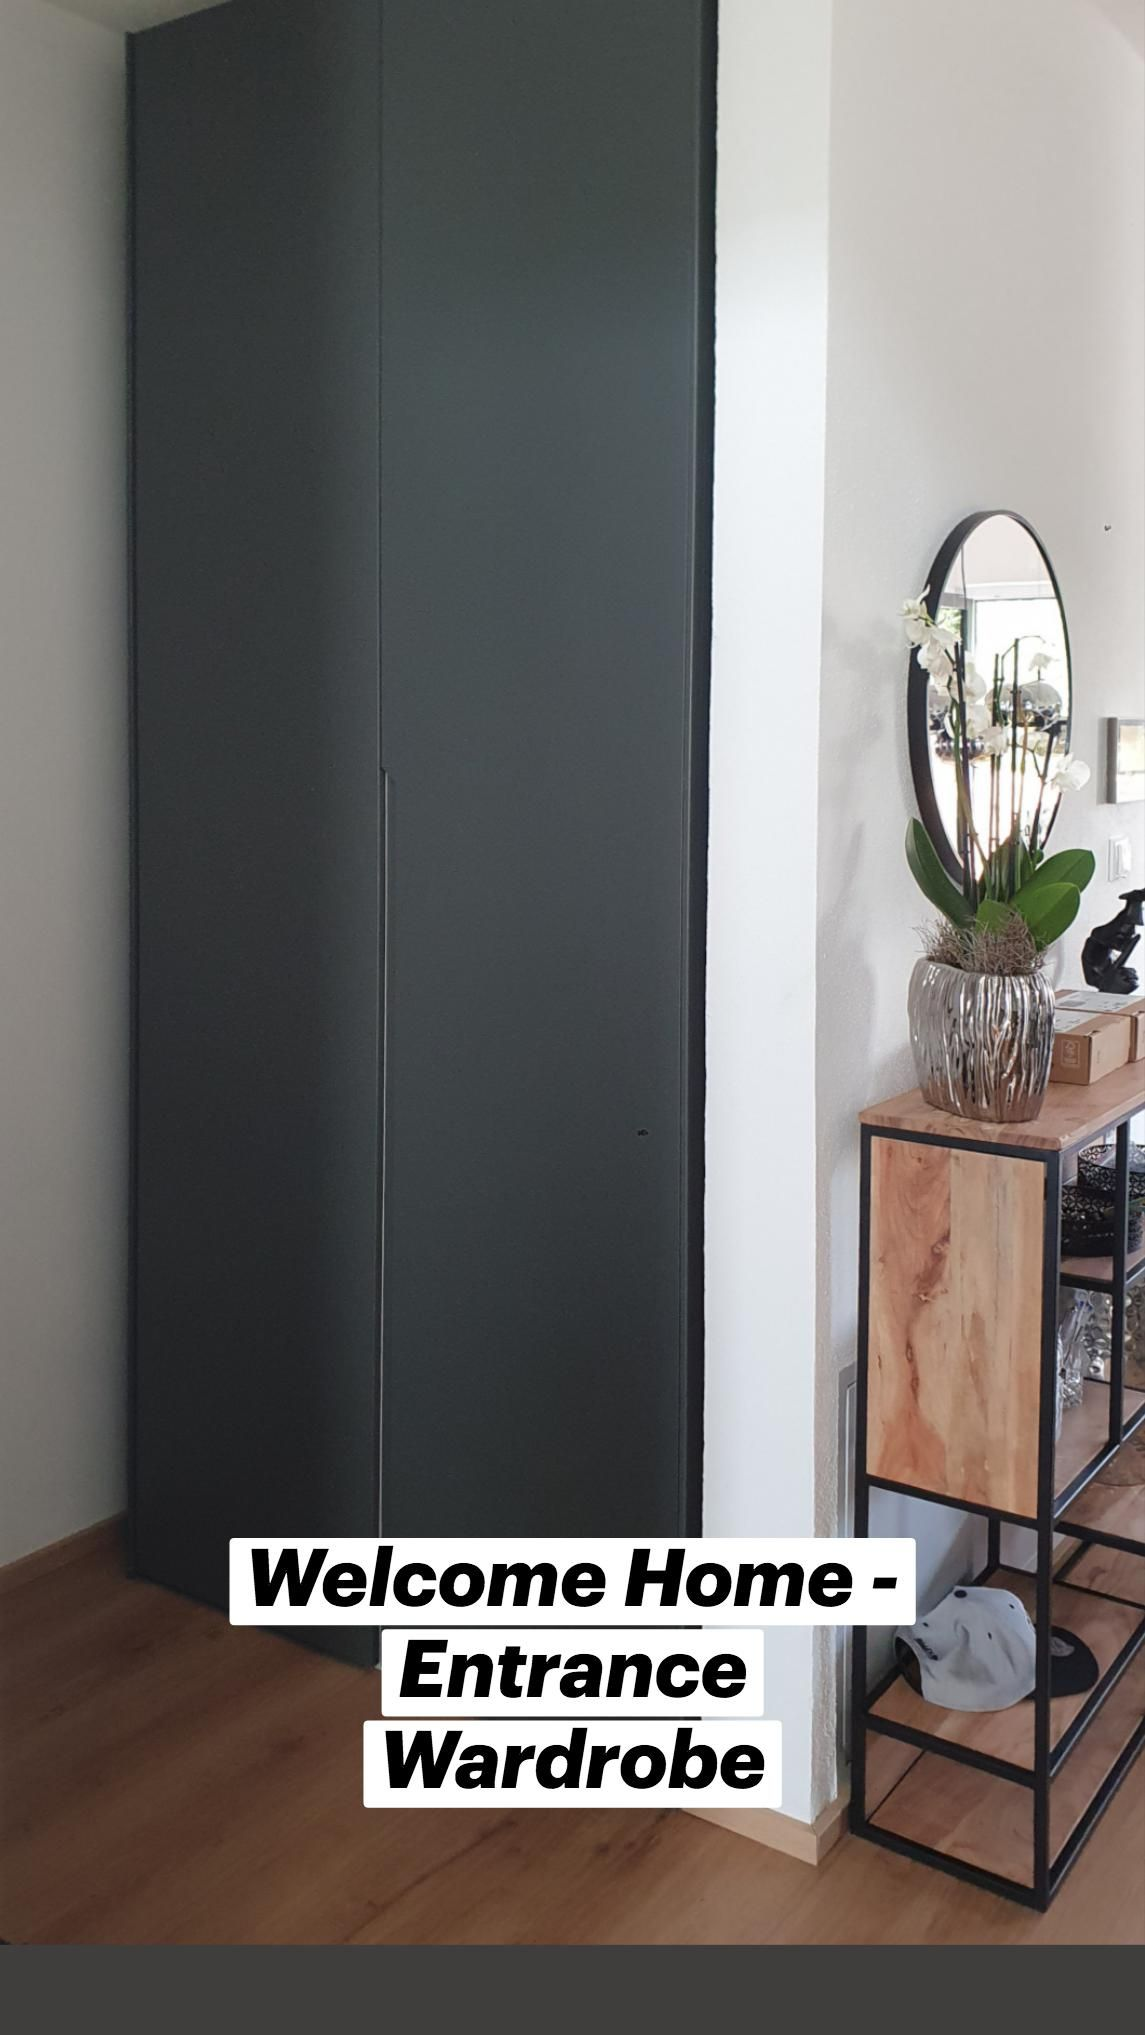 Welcome Home – Entrance Wardrobe